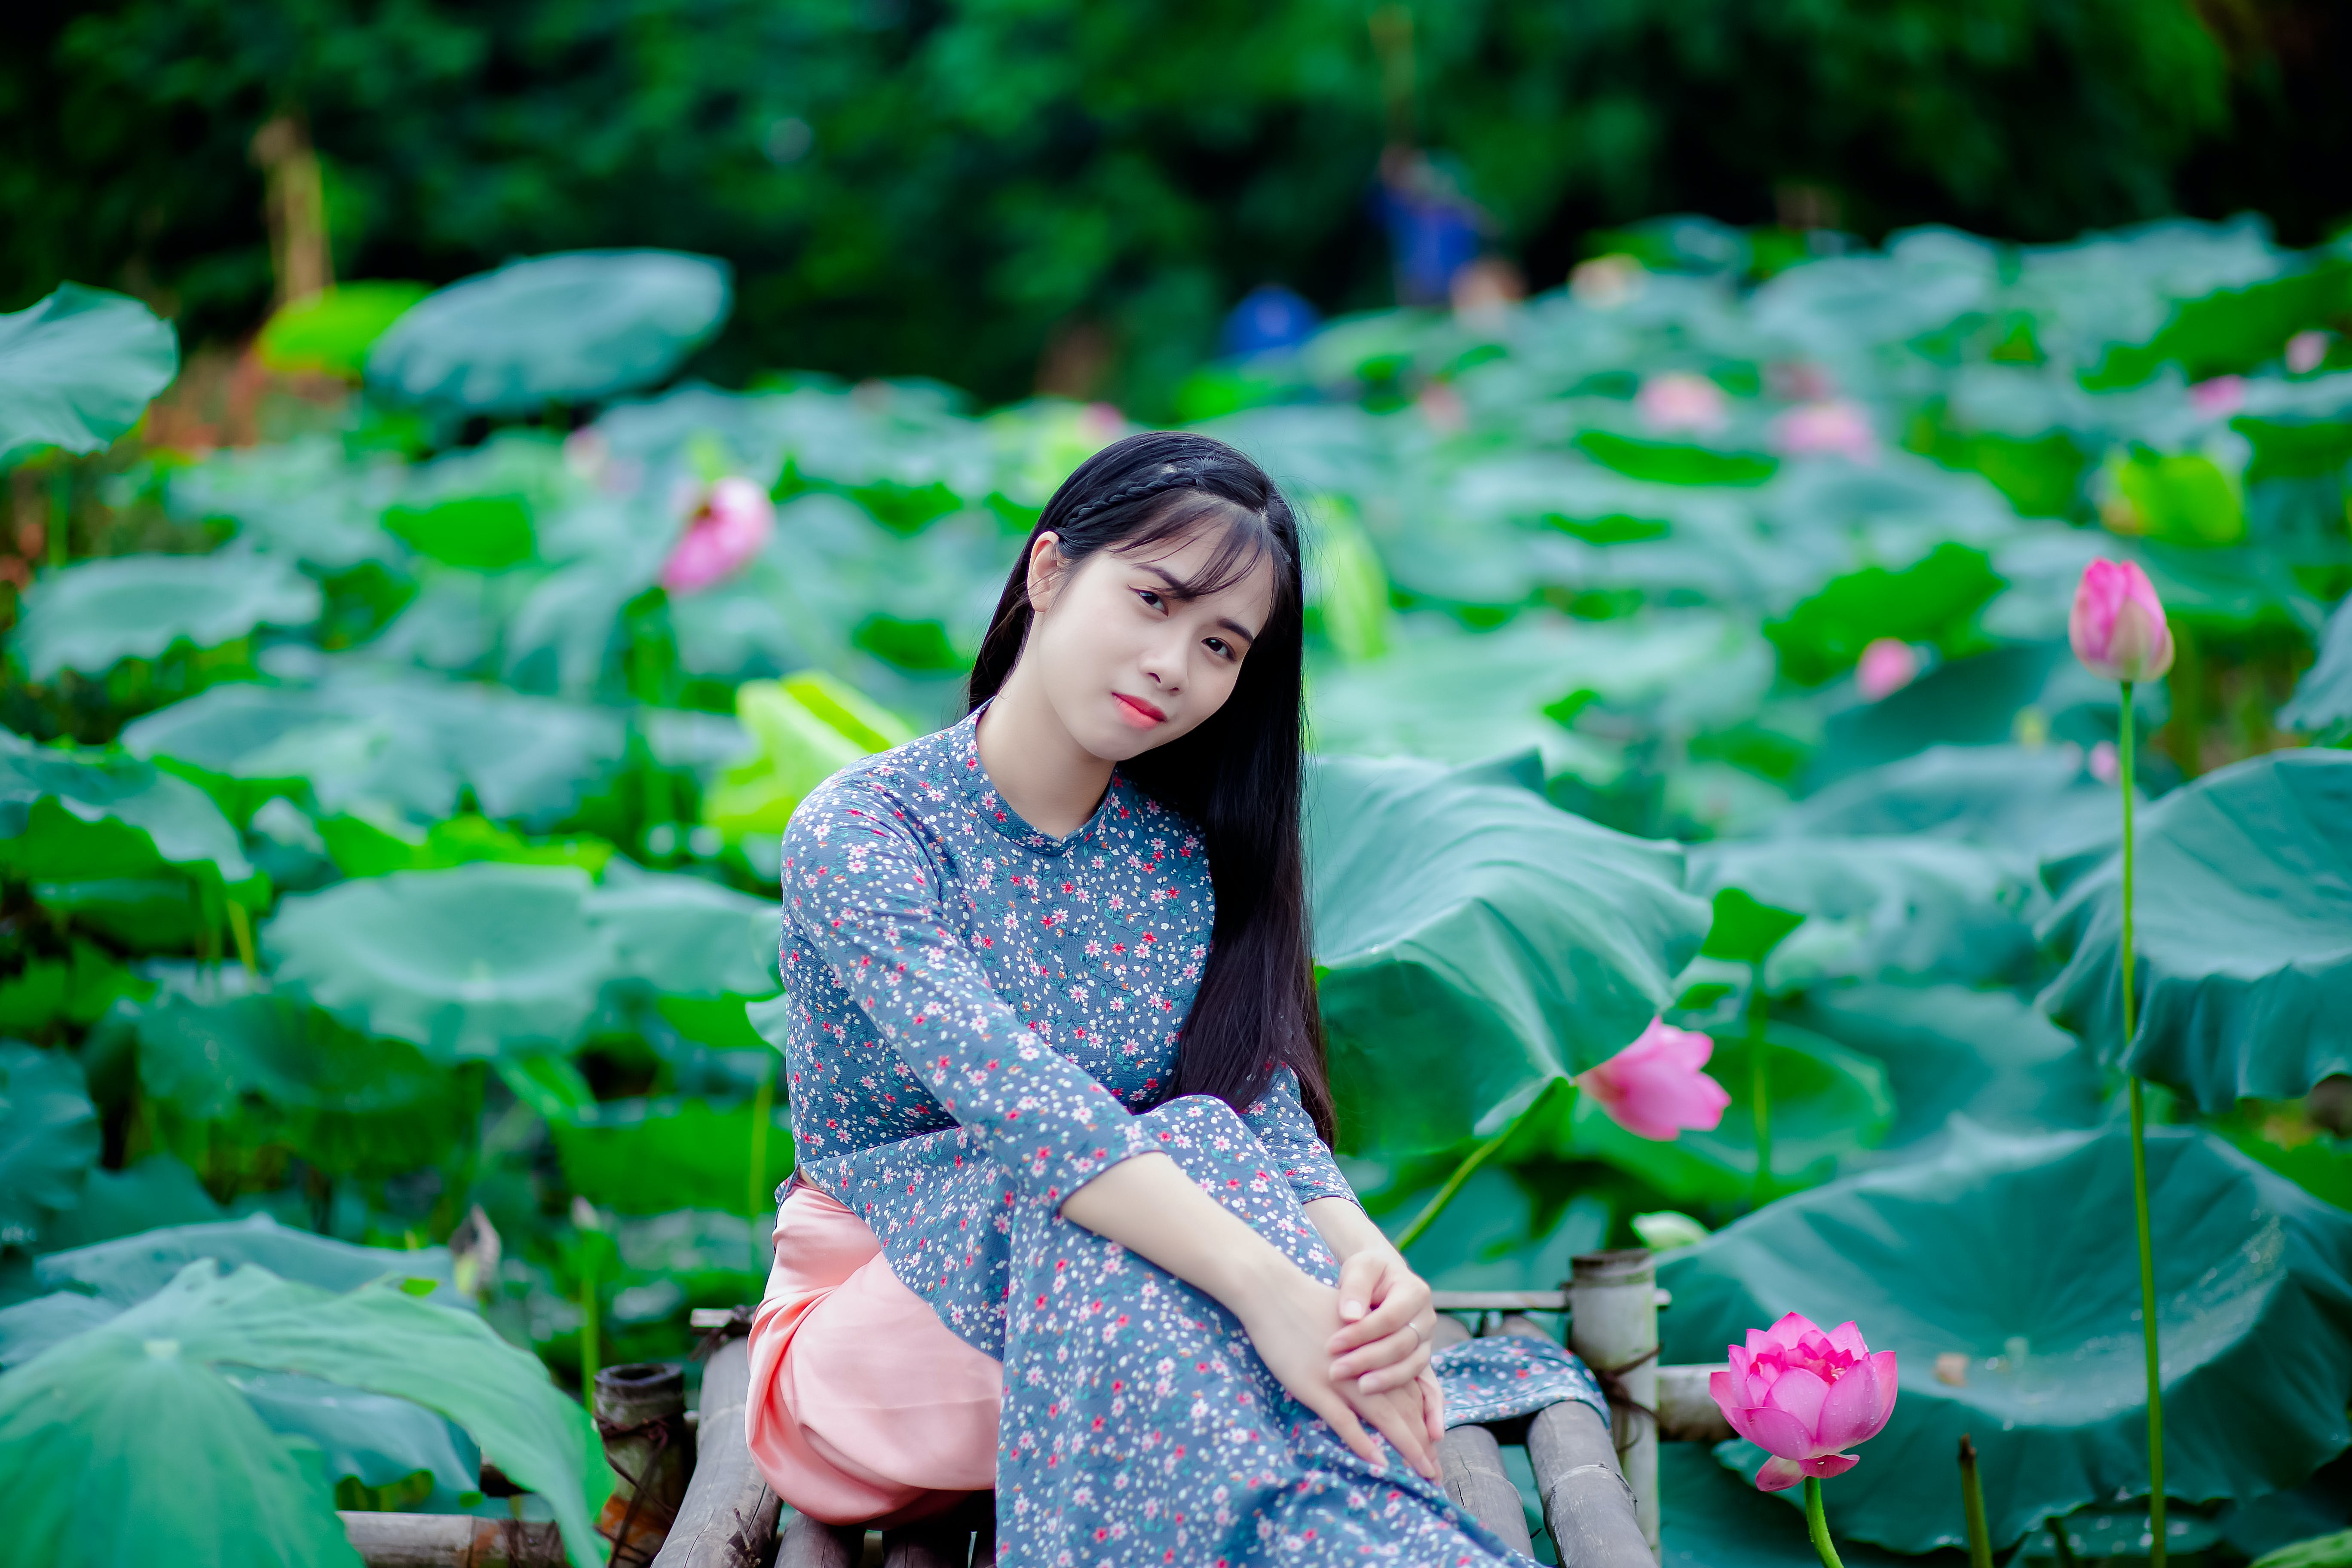 Woman Sitting on Brown Chair Surrounded With Lotus Flowers